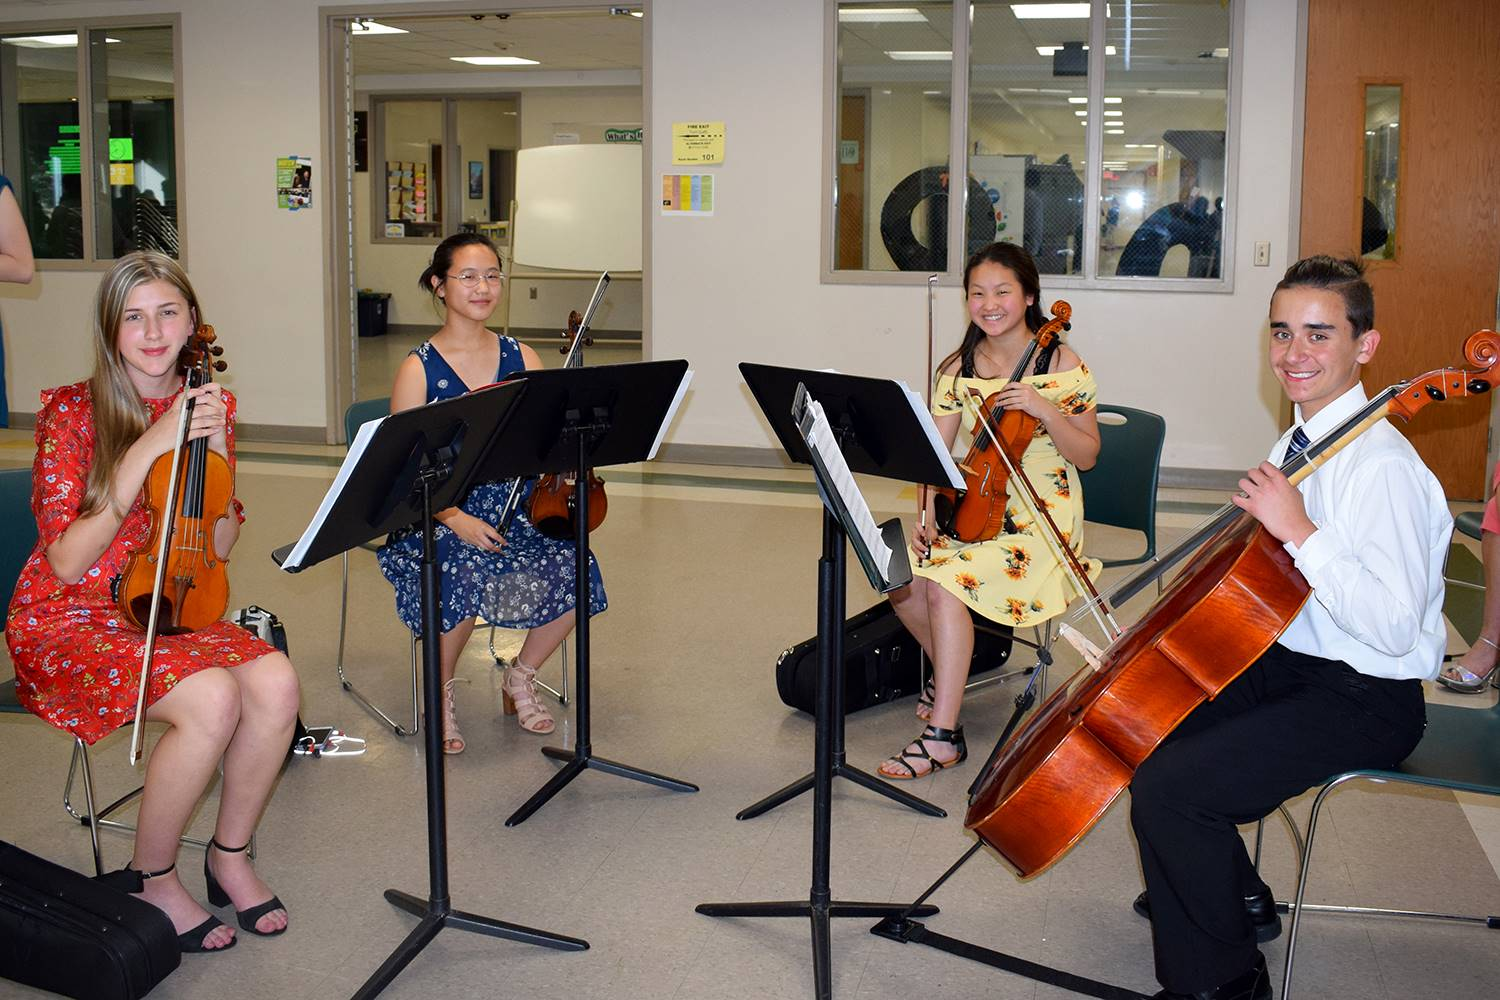 A string quartet comprised of student musicians from the Vestal Middle School Orchestra play at the